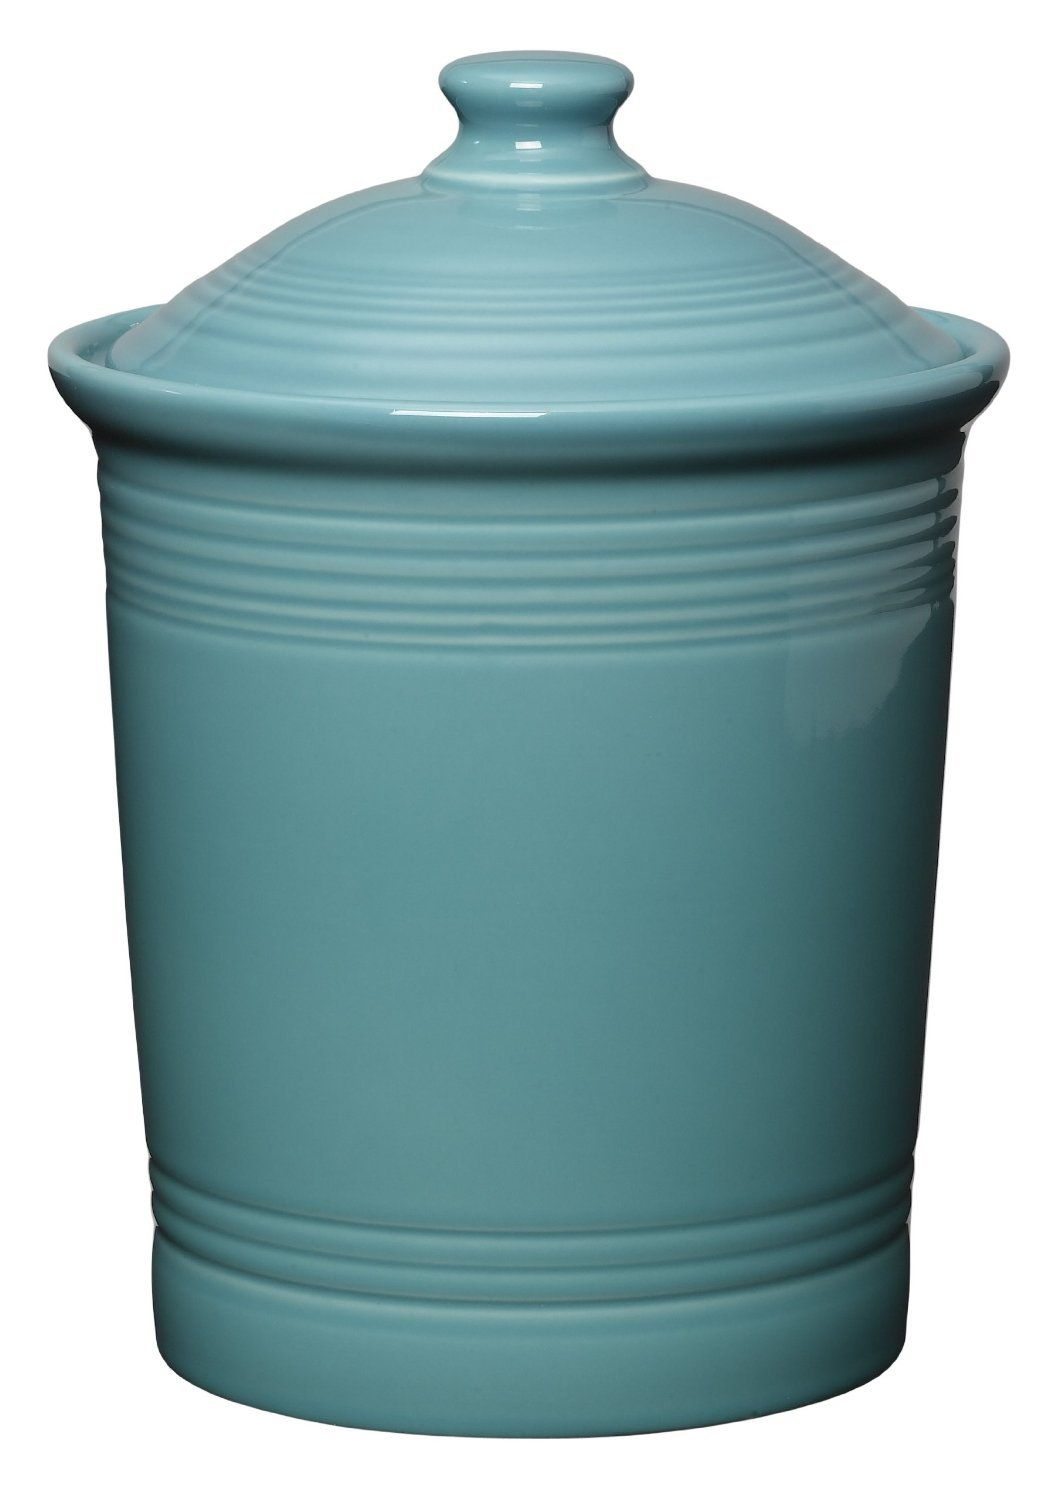 Fiesta Dinnerware Large Canister Turquoise